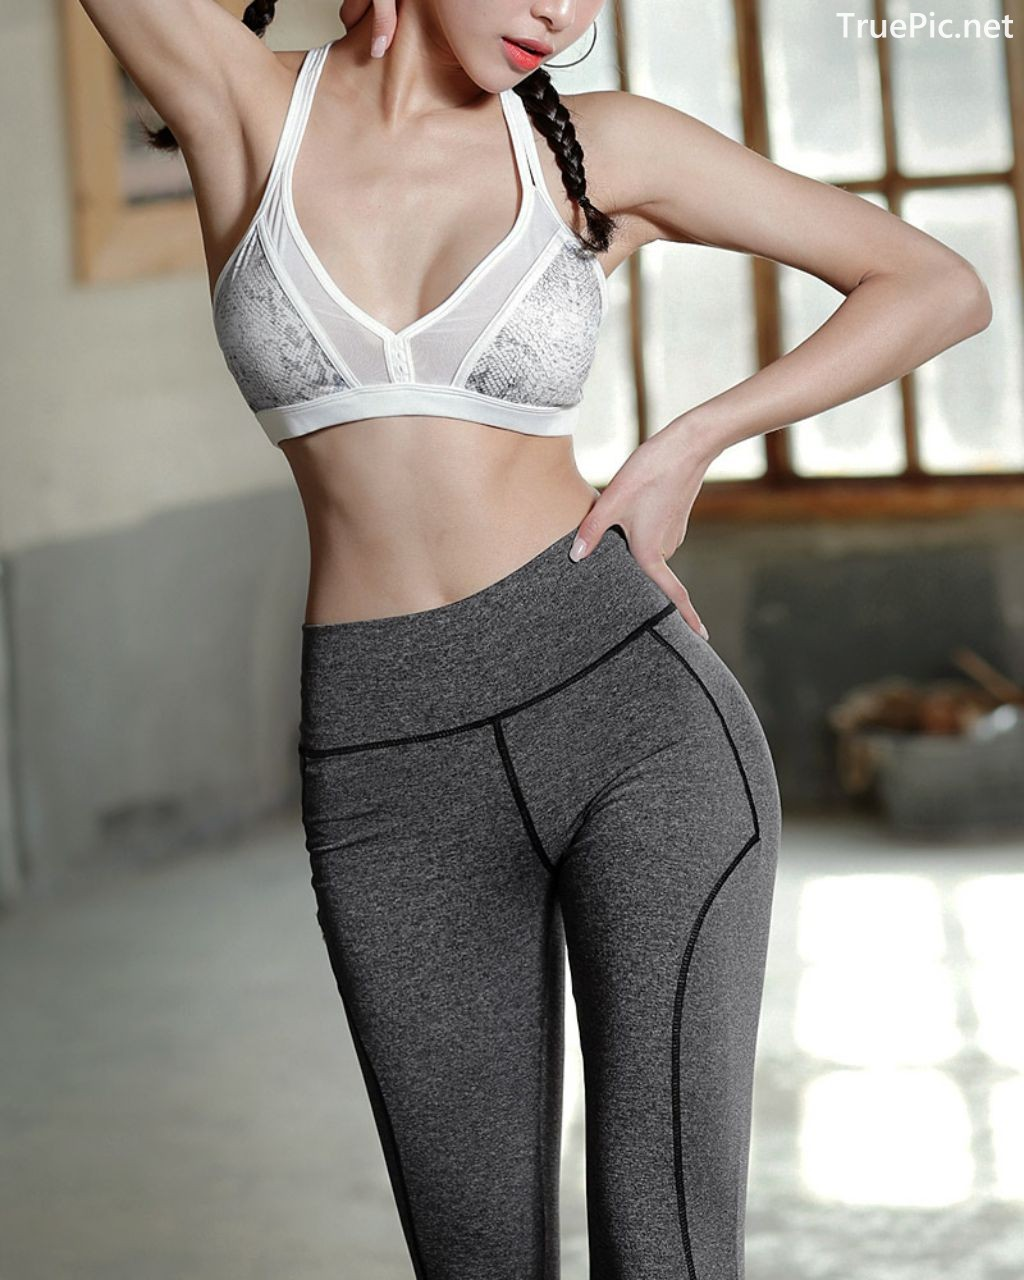 Image-Korean-Fashion-Model-Ju-Woo-Fitness-Set-Collection-TruePic.net- Picture-9